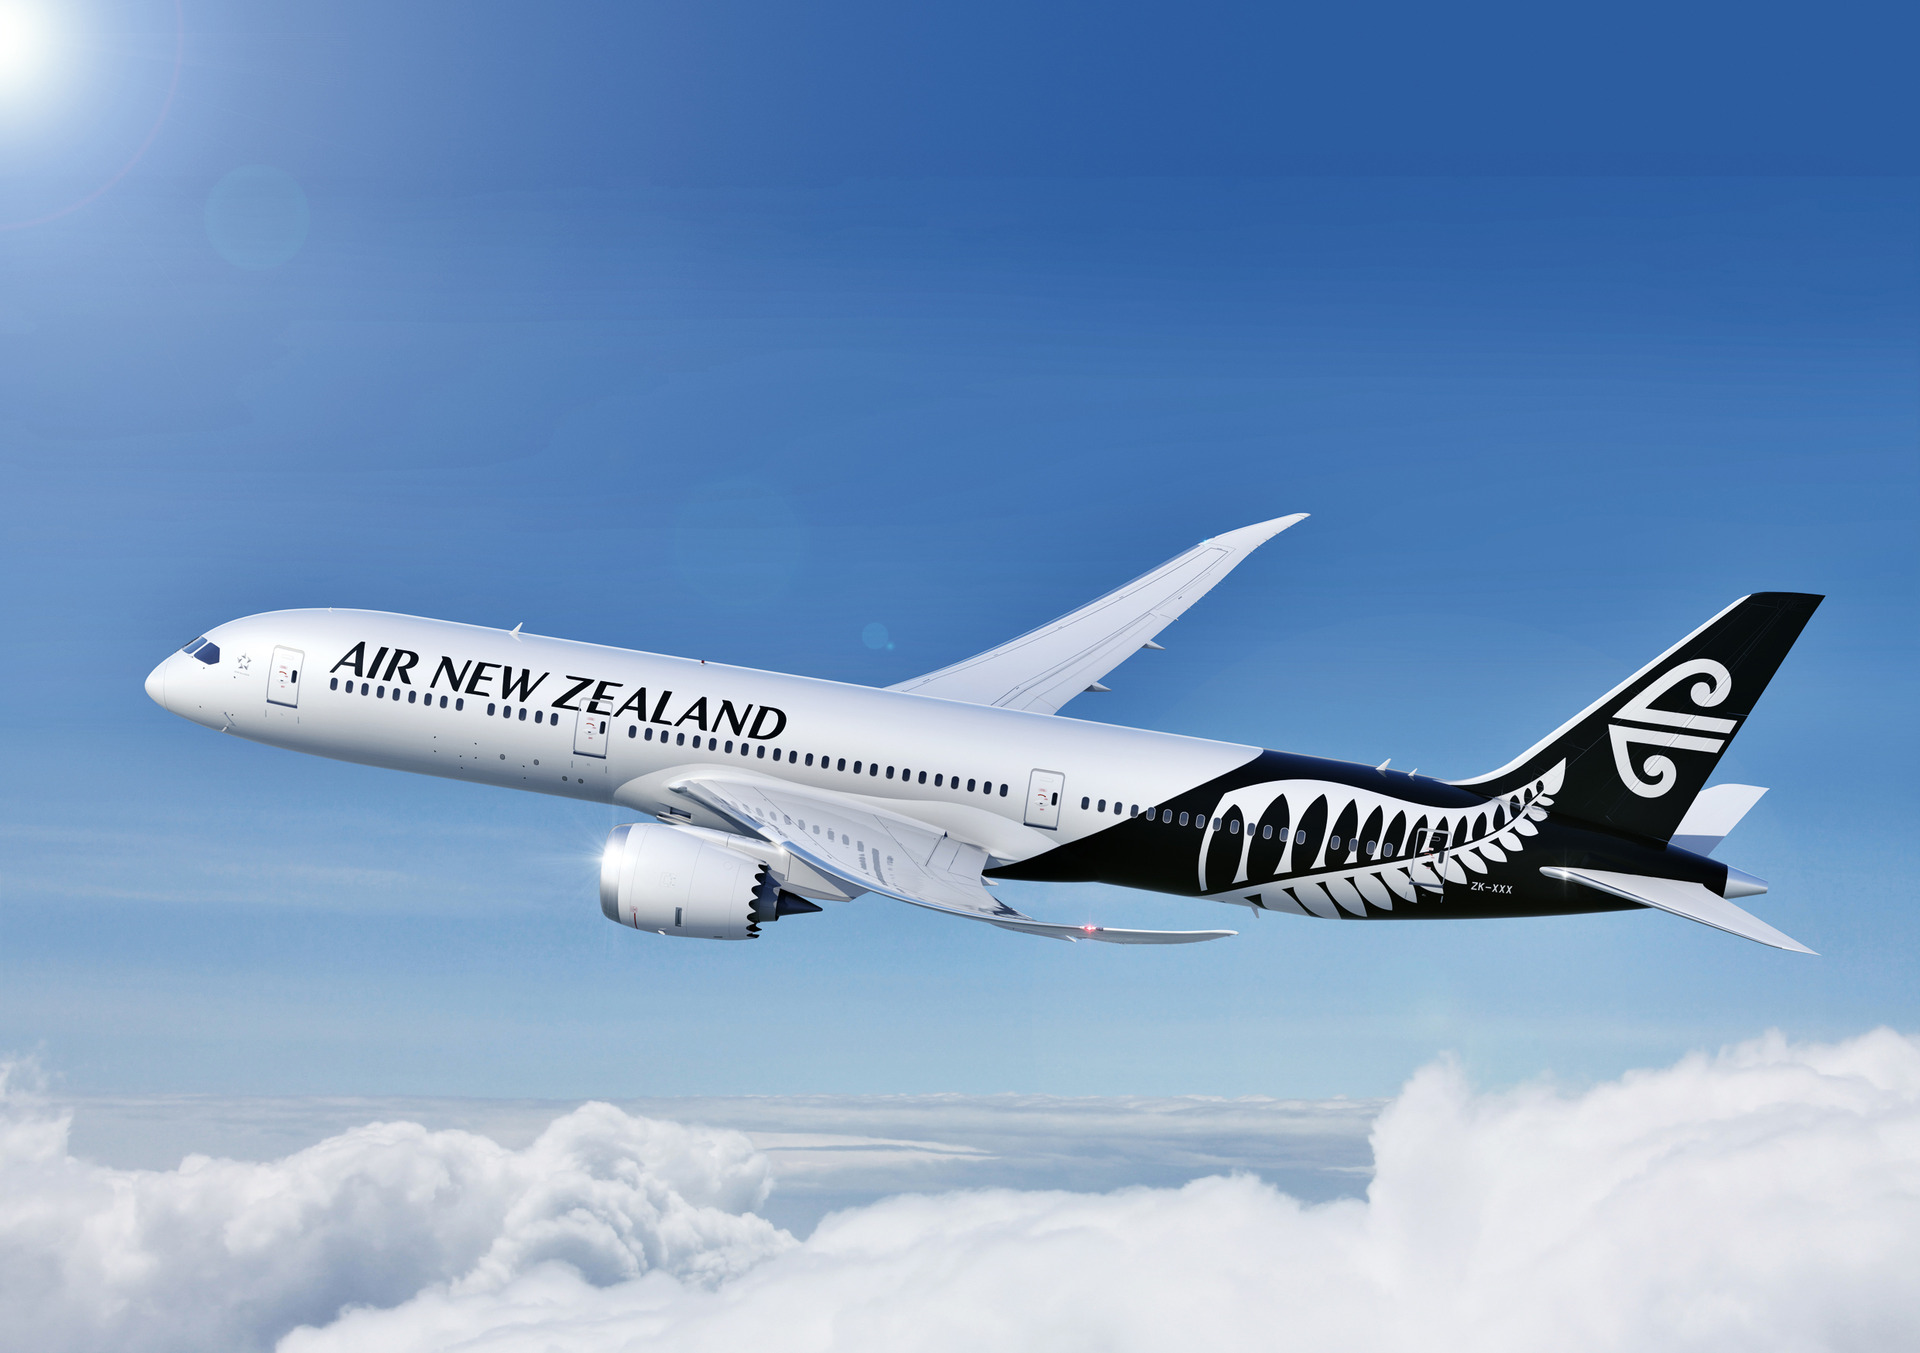 Air NZ flight diverted to Hawaii with 'engineering issue'